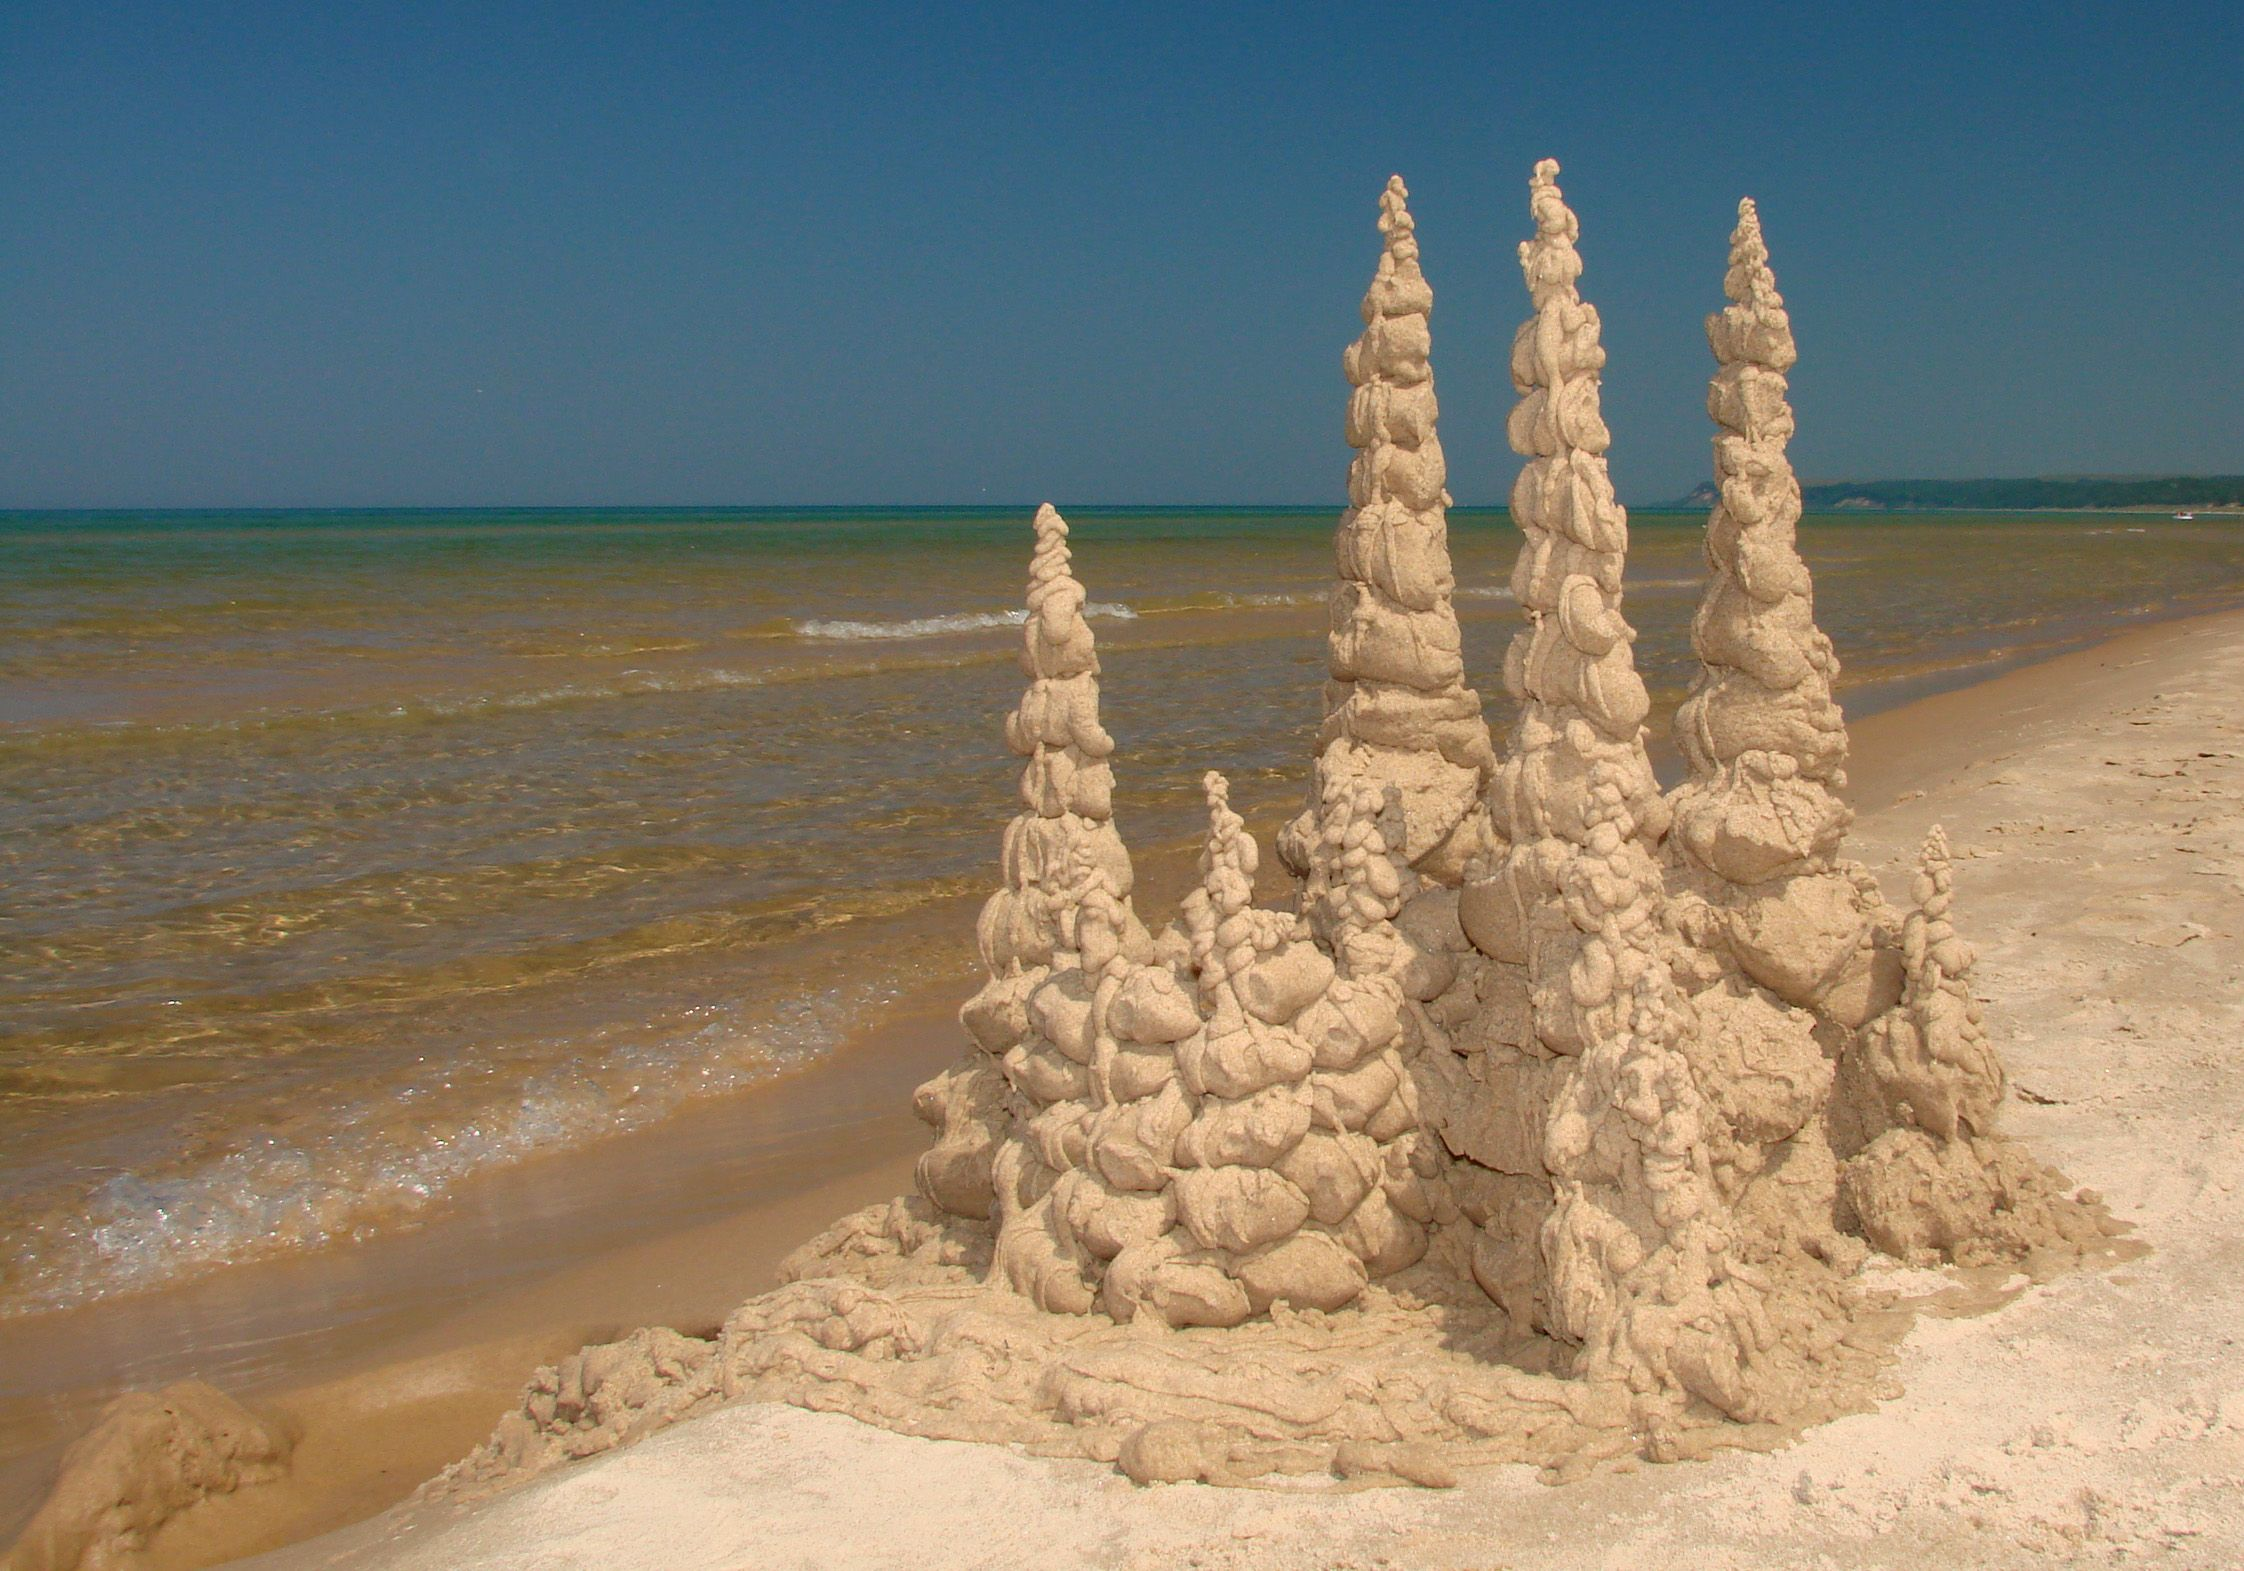 Love Doing Castles By Dripping Wet Sand Into Forms Sand Castle Sand Art Sand Sculptures